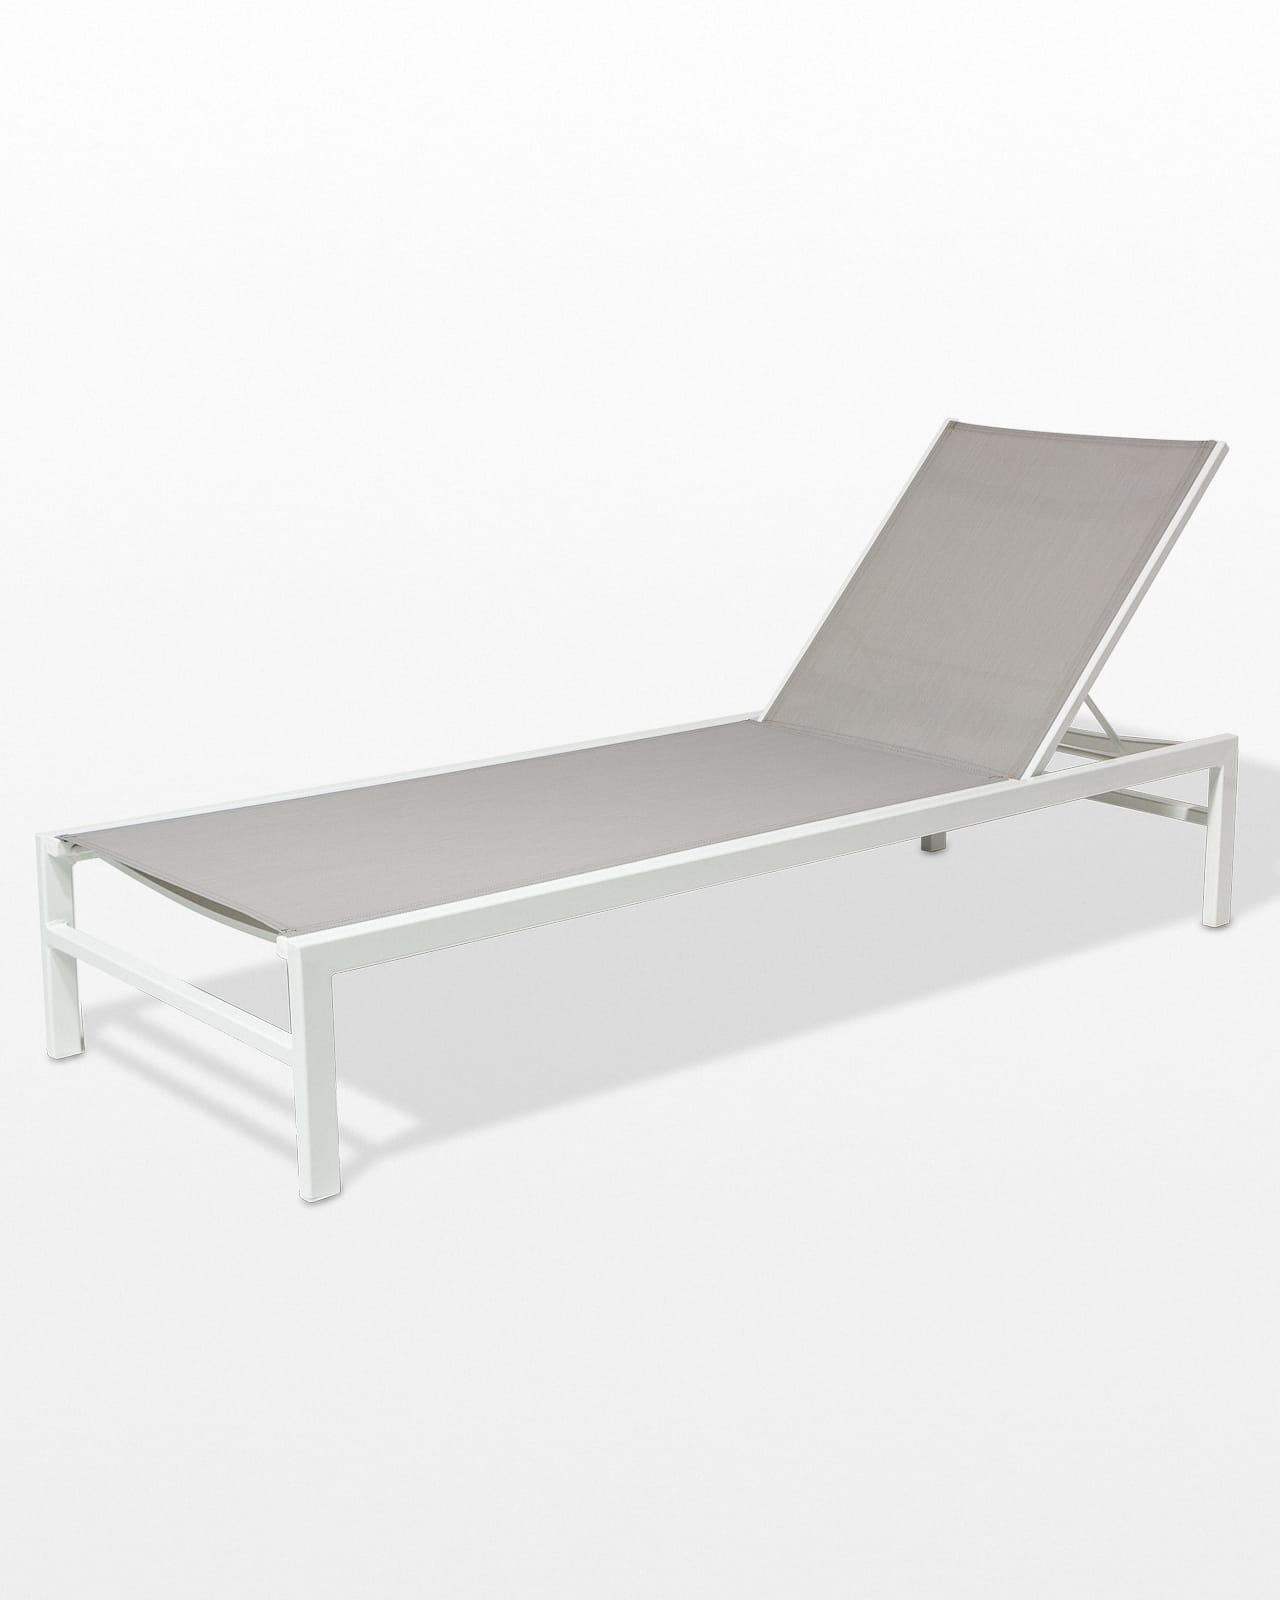 Pool Lounge Chair Ch526 Bella White Frame Pool Lounge Chair Prop Rental Acme Brooklyn